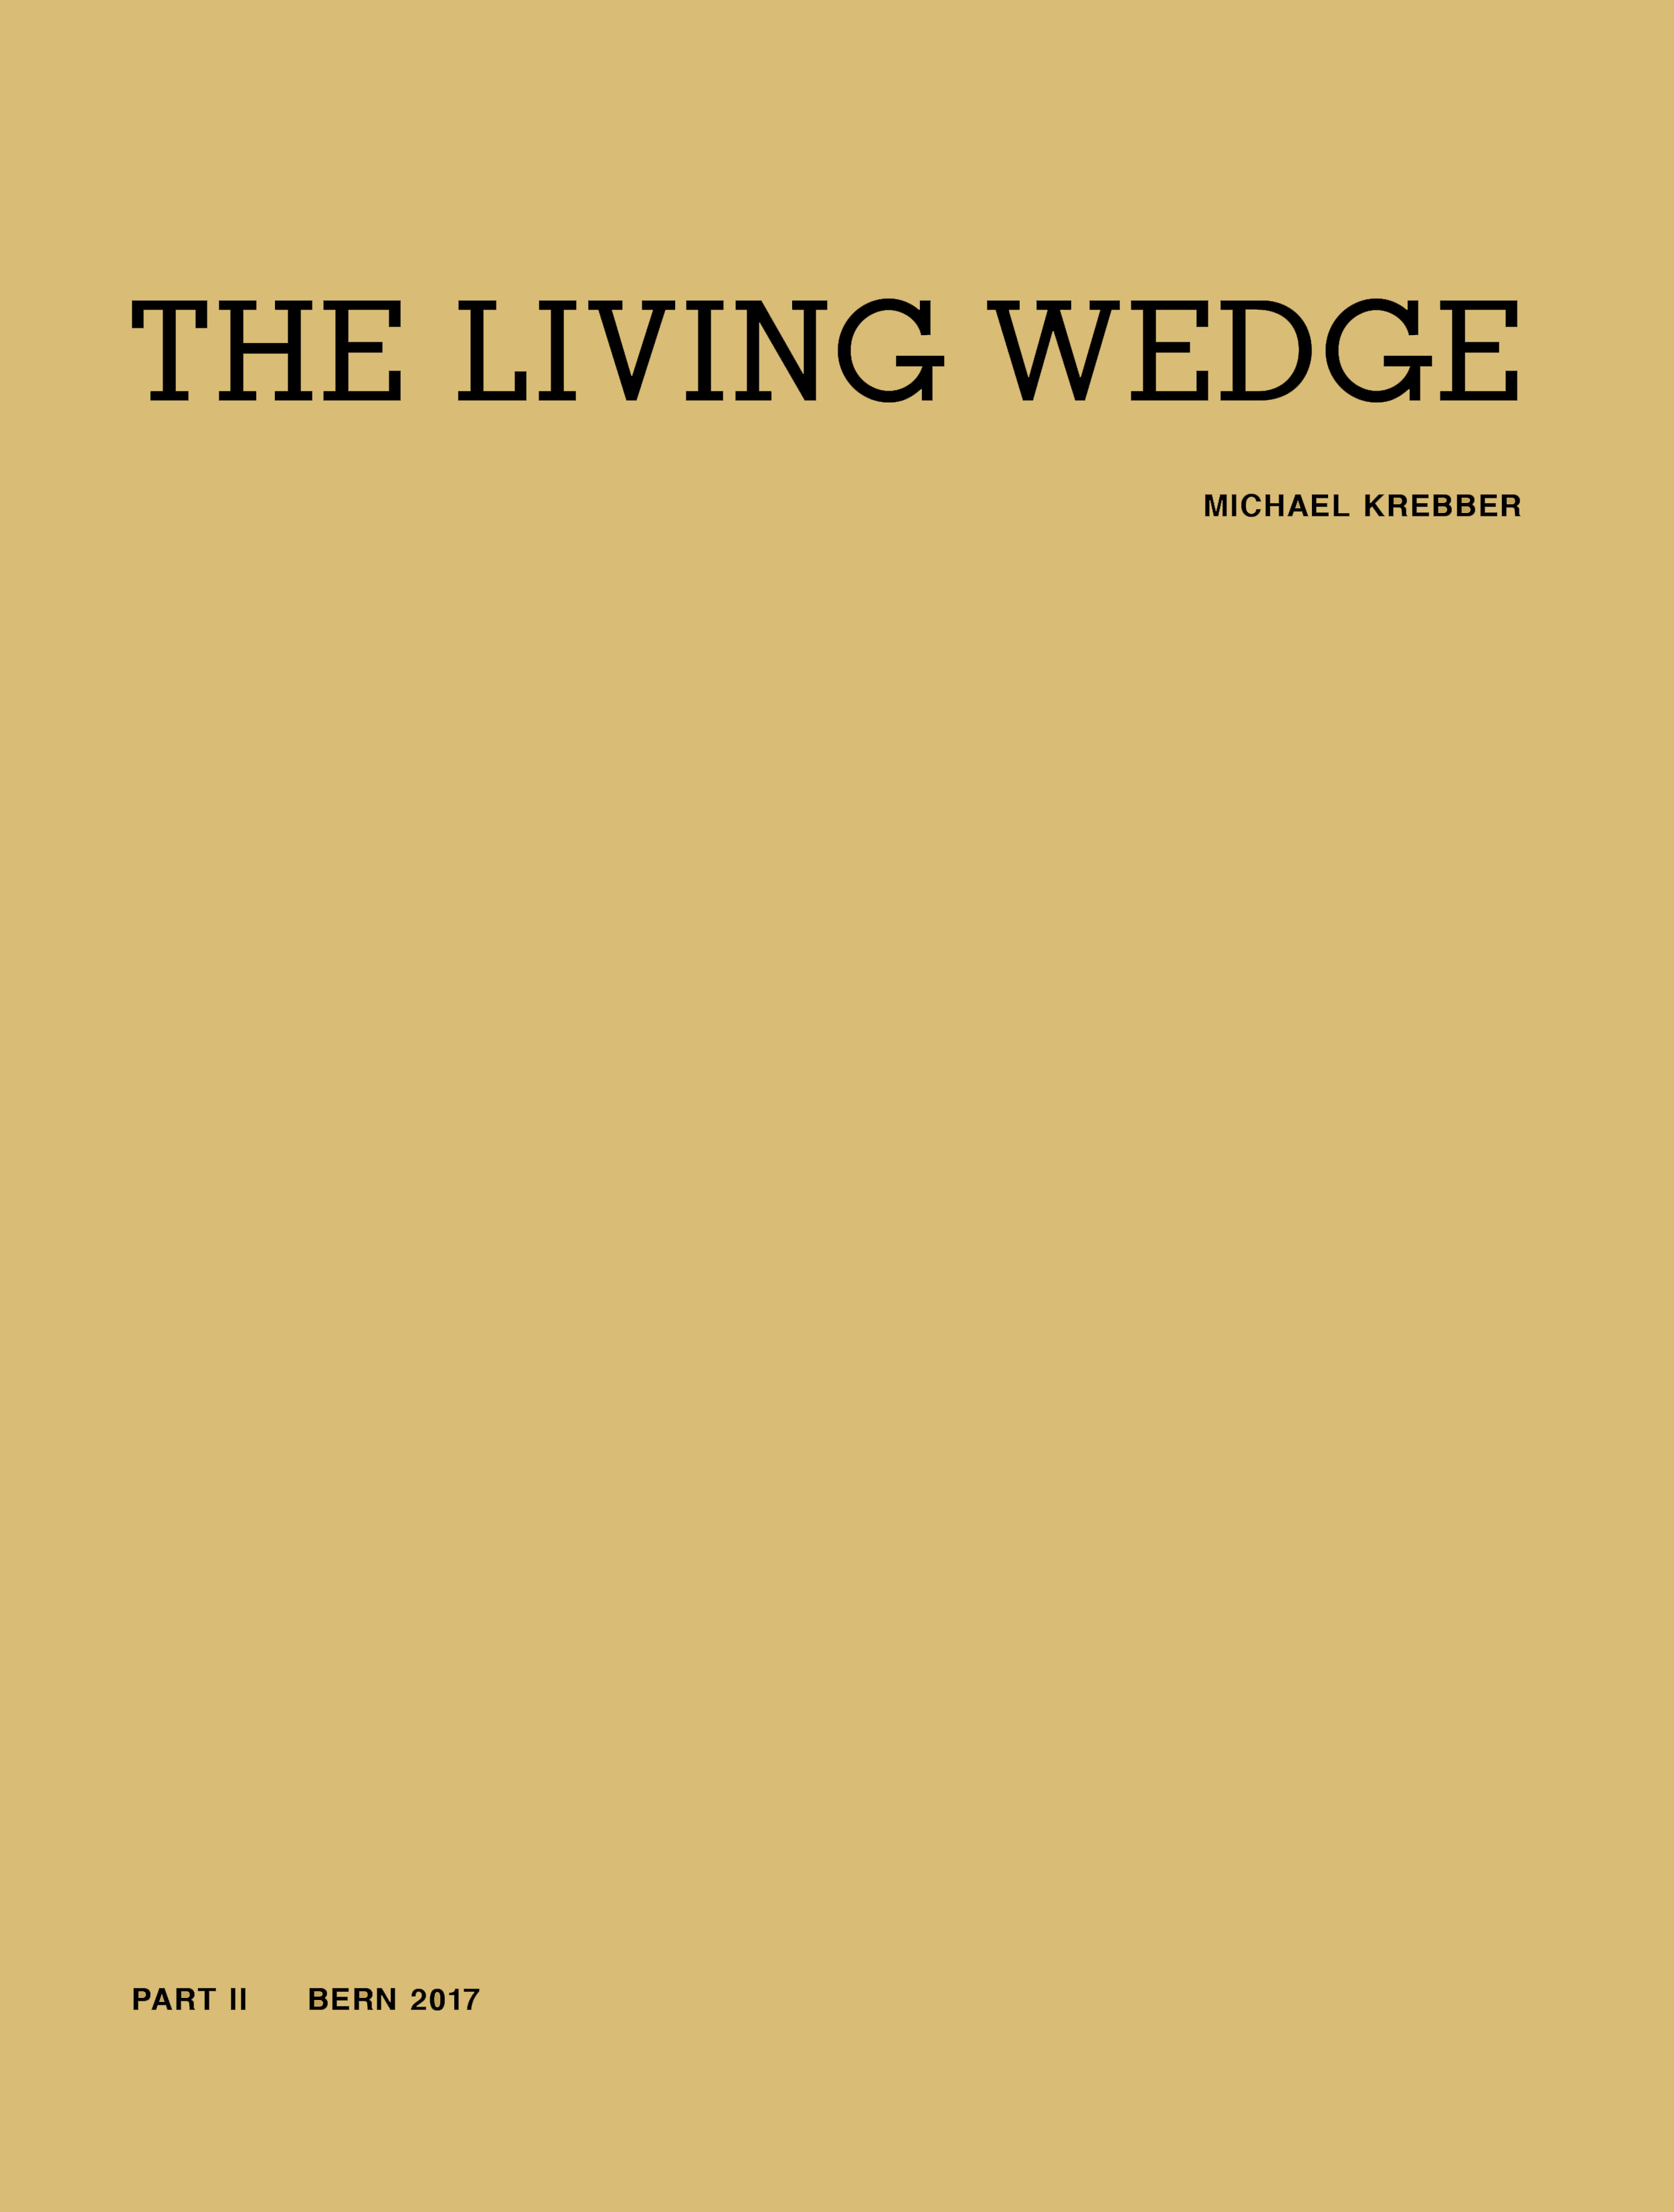 "Michael Krebber – ""The Living Wedge. Part I"" 2017, 152 pages, fully illustrated in color, Owrps, 28 x 21,5 cm Euro 24.80,- – This two part publication documents the survey exhibition of Michael Krebber under the same title that took place at the Museo de Serralves, Porto and the Kunsthalle Bern in 2016/2017. Part I contains, beside the directors' forewords, color plates of all exhibited works."